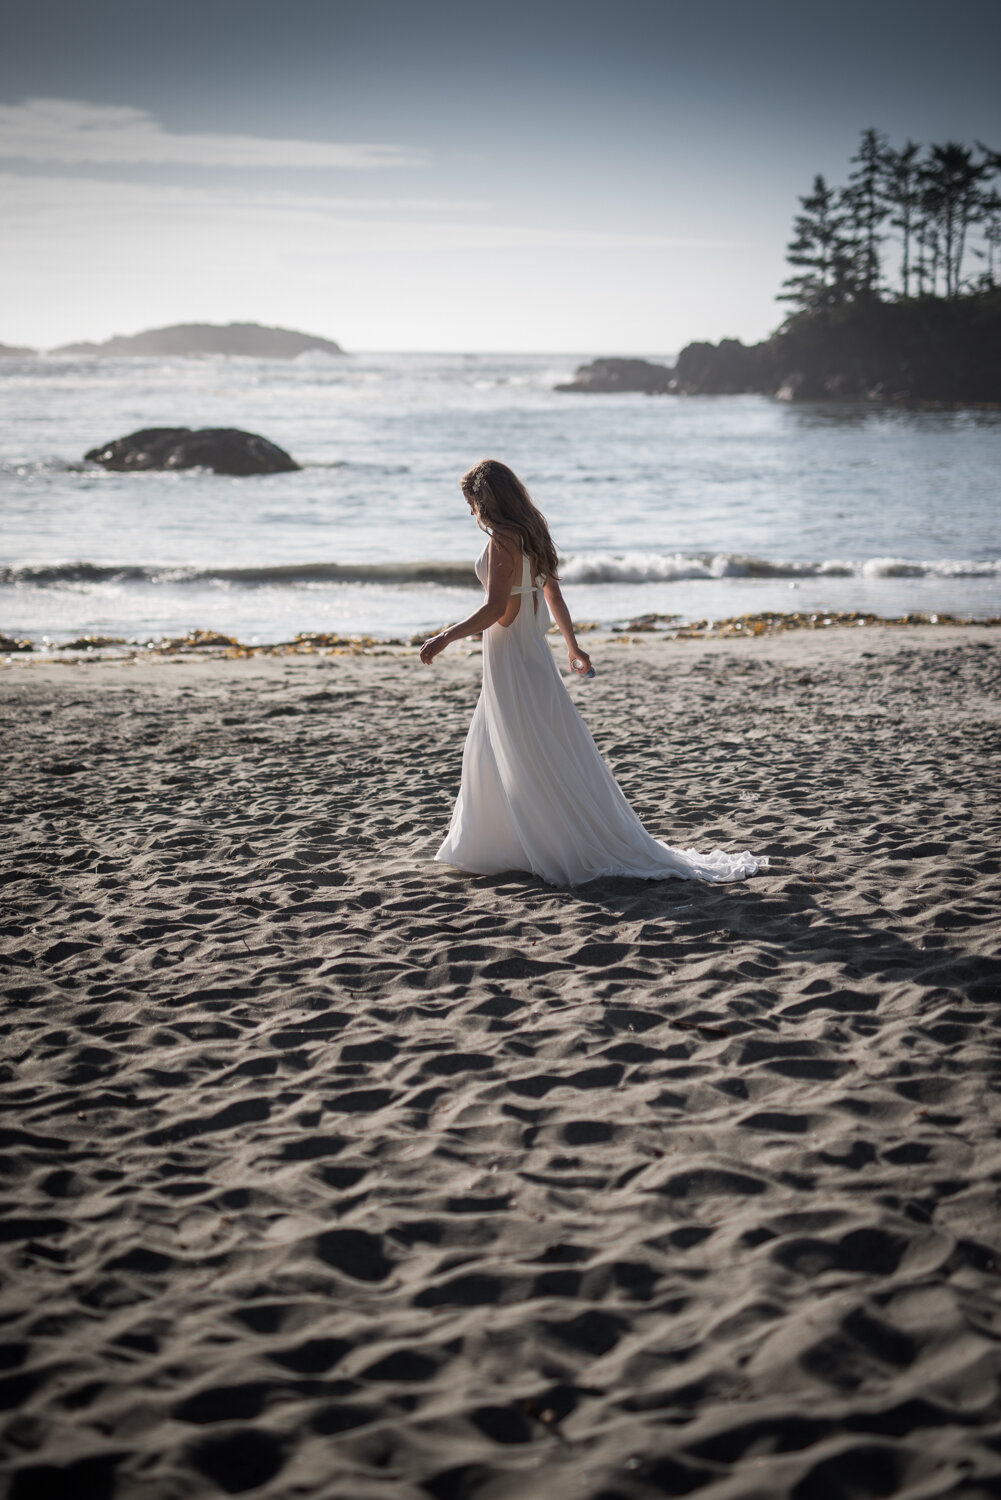 Ucluelet-Wya-Point-Wedding-Owen-Imaging-47.jpg